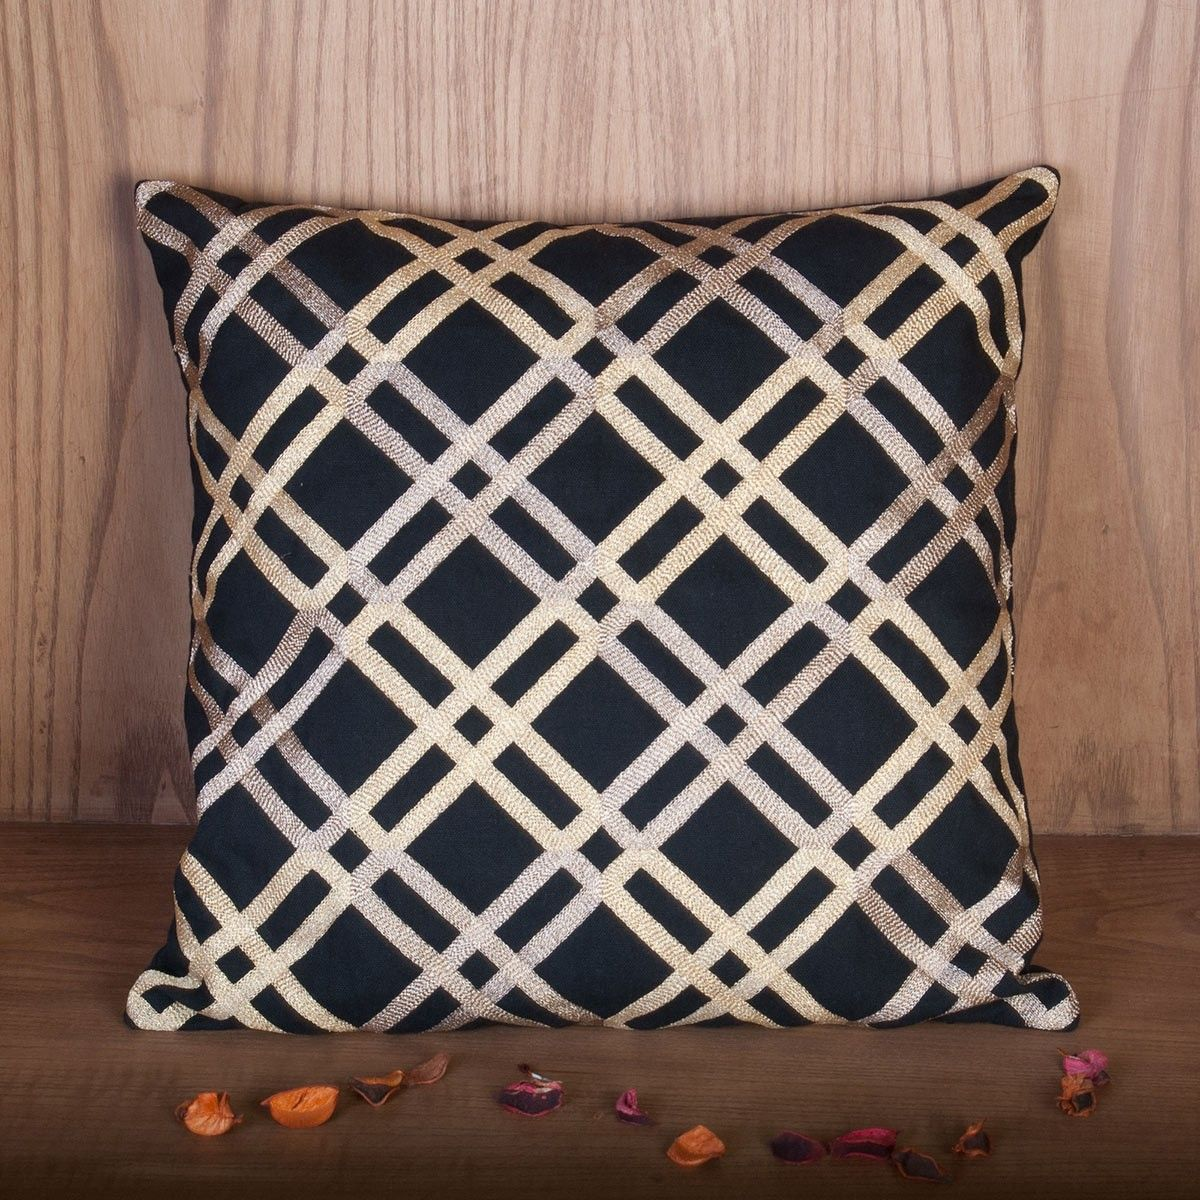 Zehreen Black Stripe Cushion